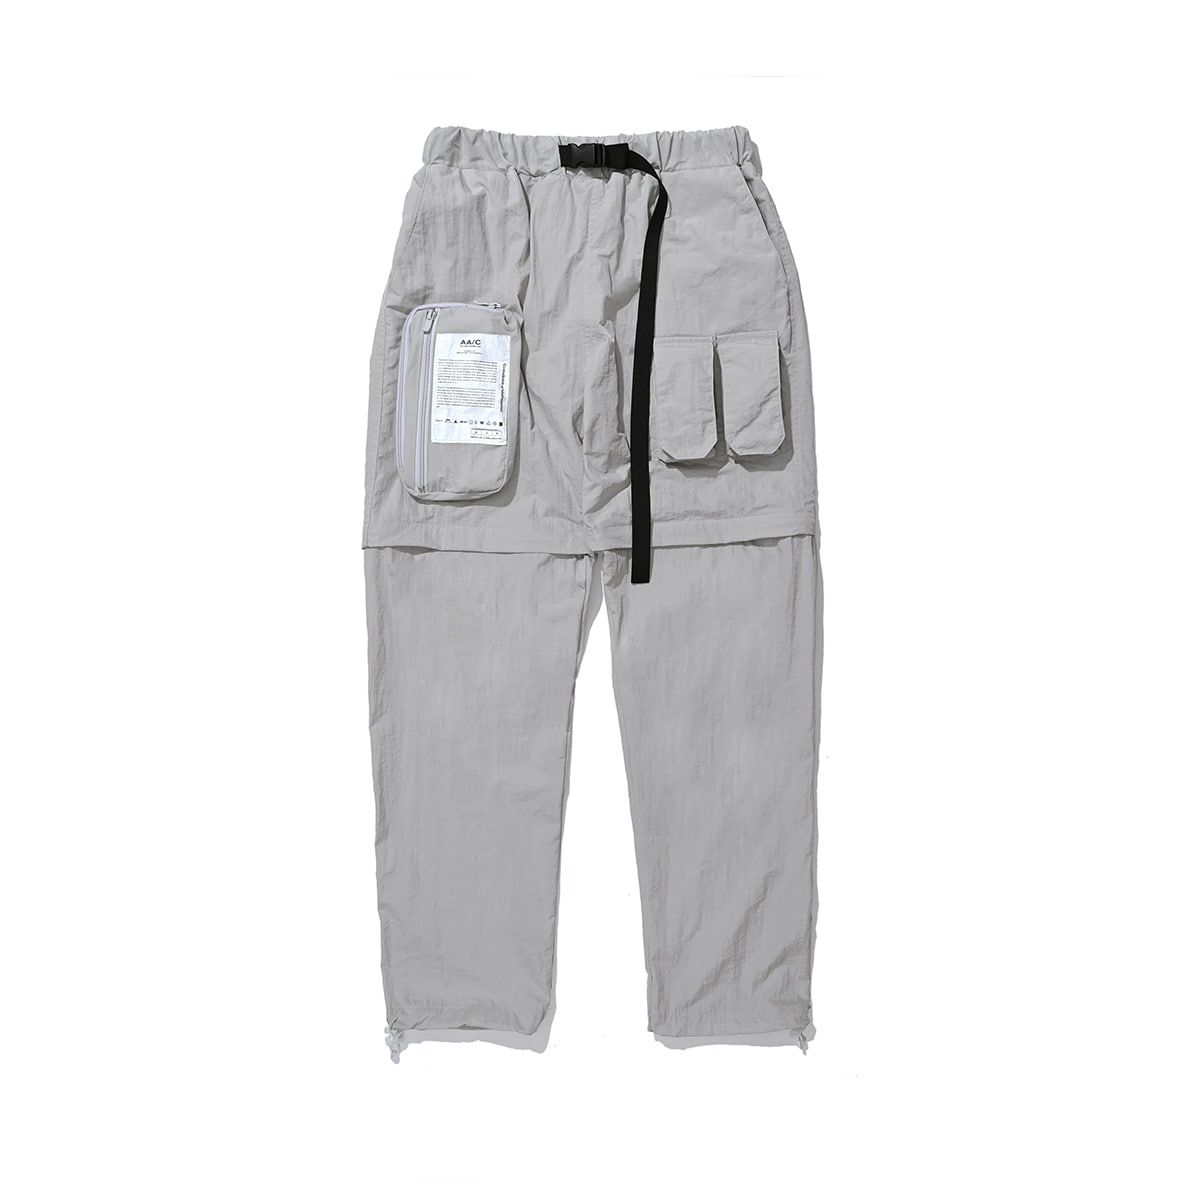 Zippered Hybrid Shorts/Pants (gray)